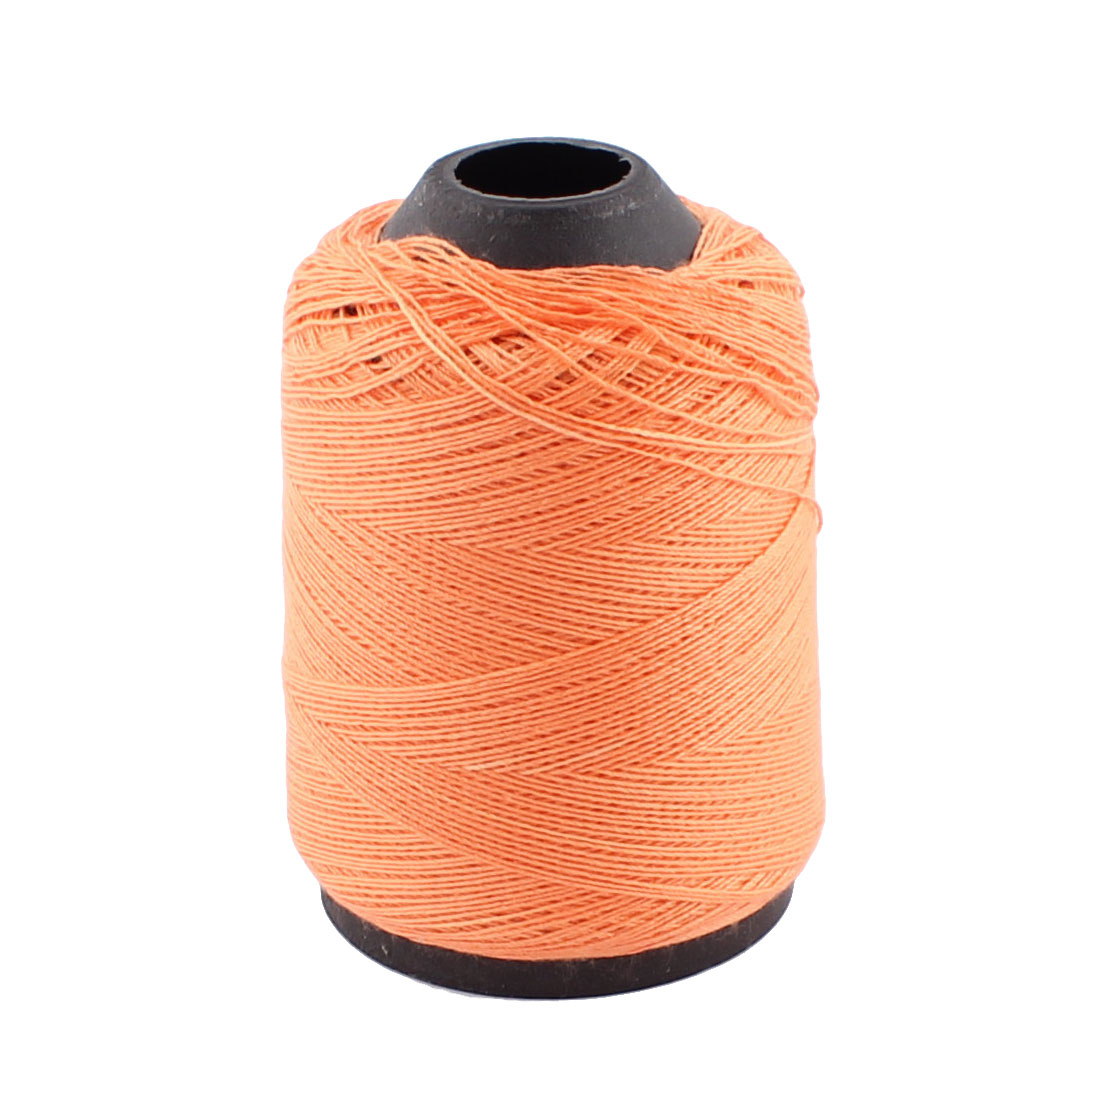 Tailor Craft Needlework Polyester String Line Sewing Thread Spool Reel Orange